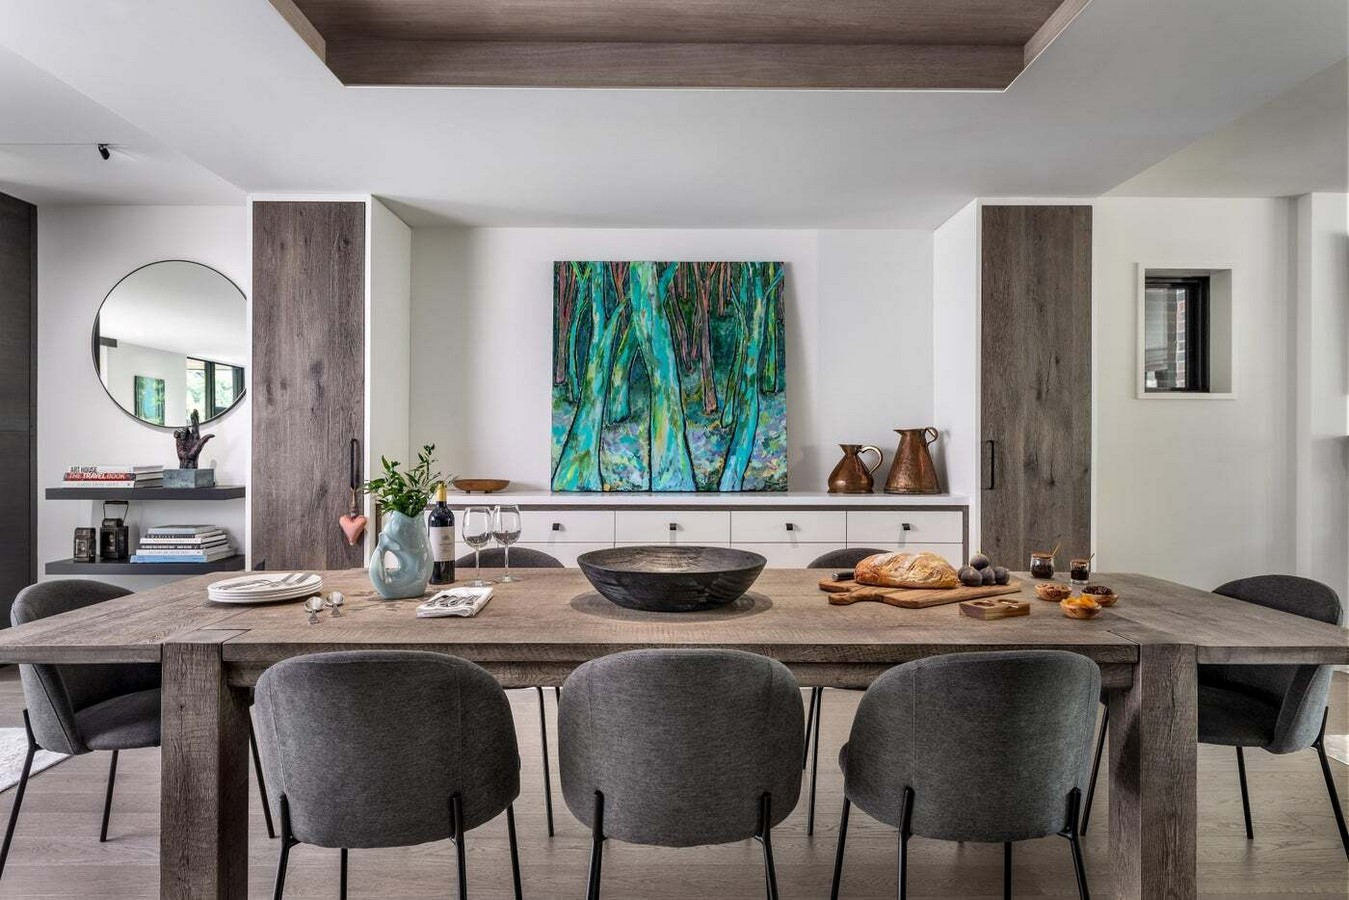 10 Dining rooms ideas that can enhance the space - Sheet14